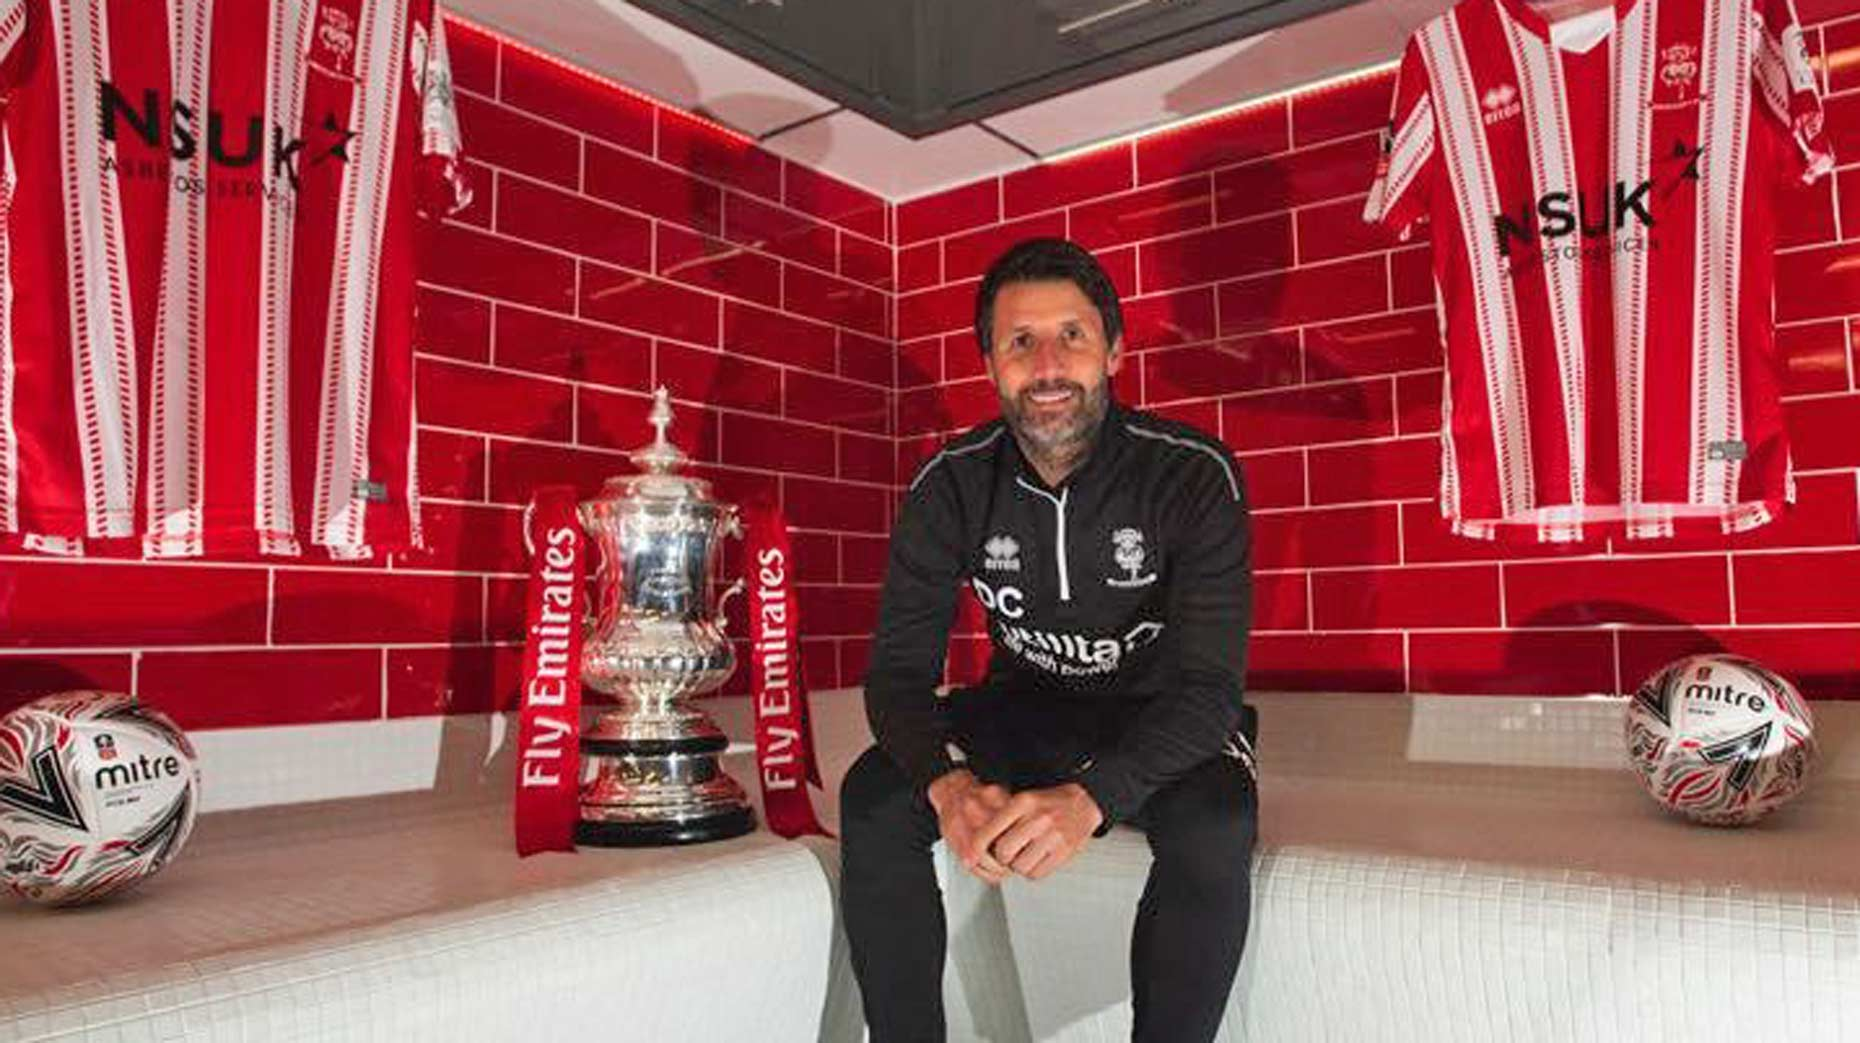 Danny Cowley leaving Lincoln for Huddersfield, reports say